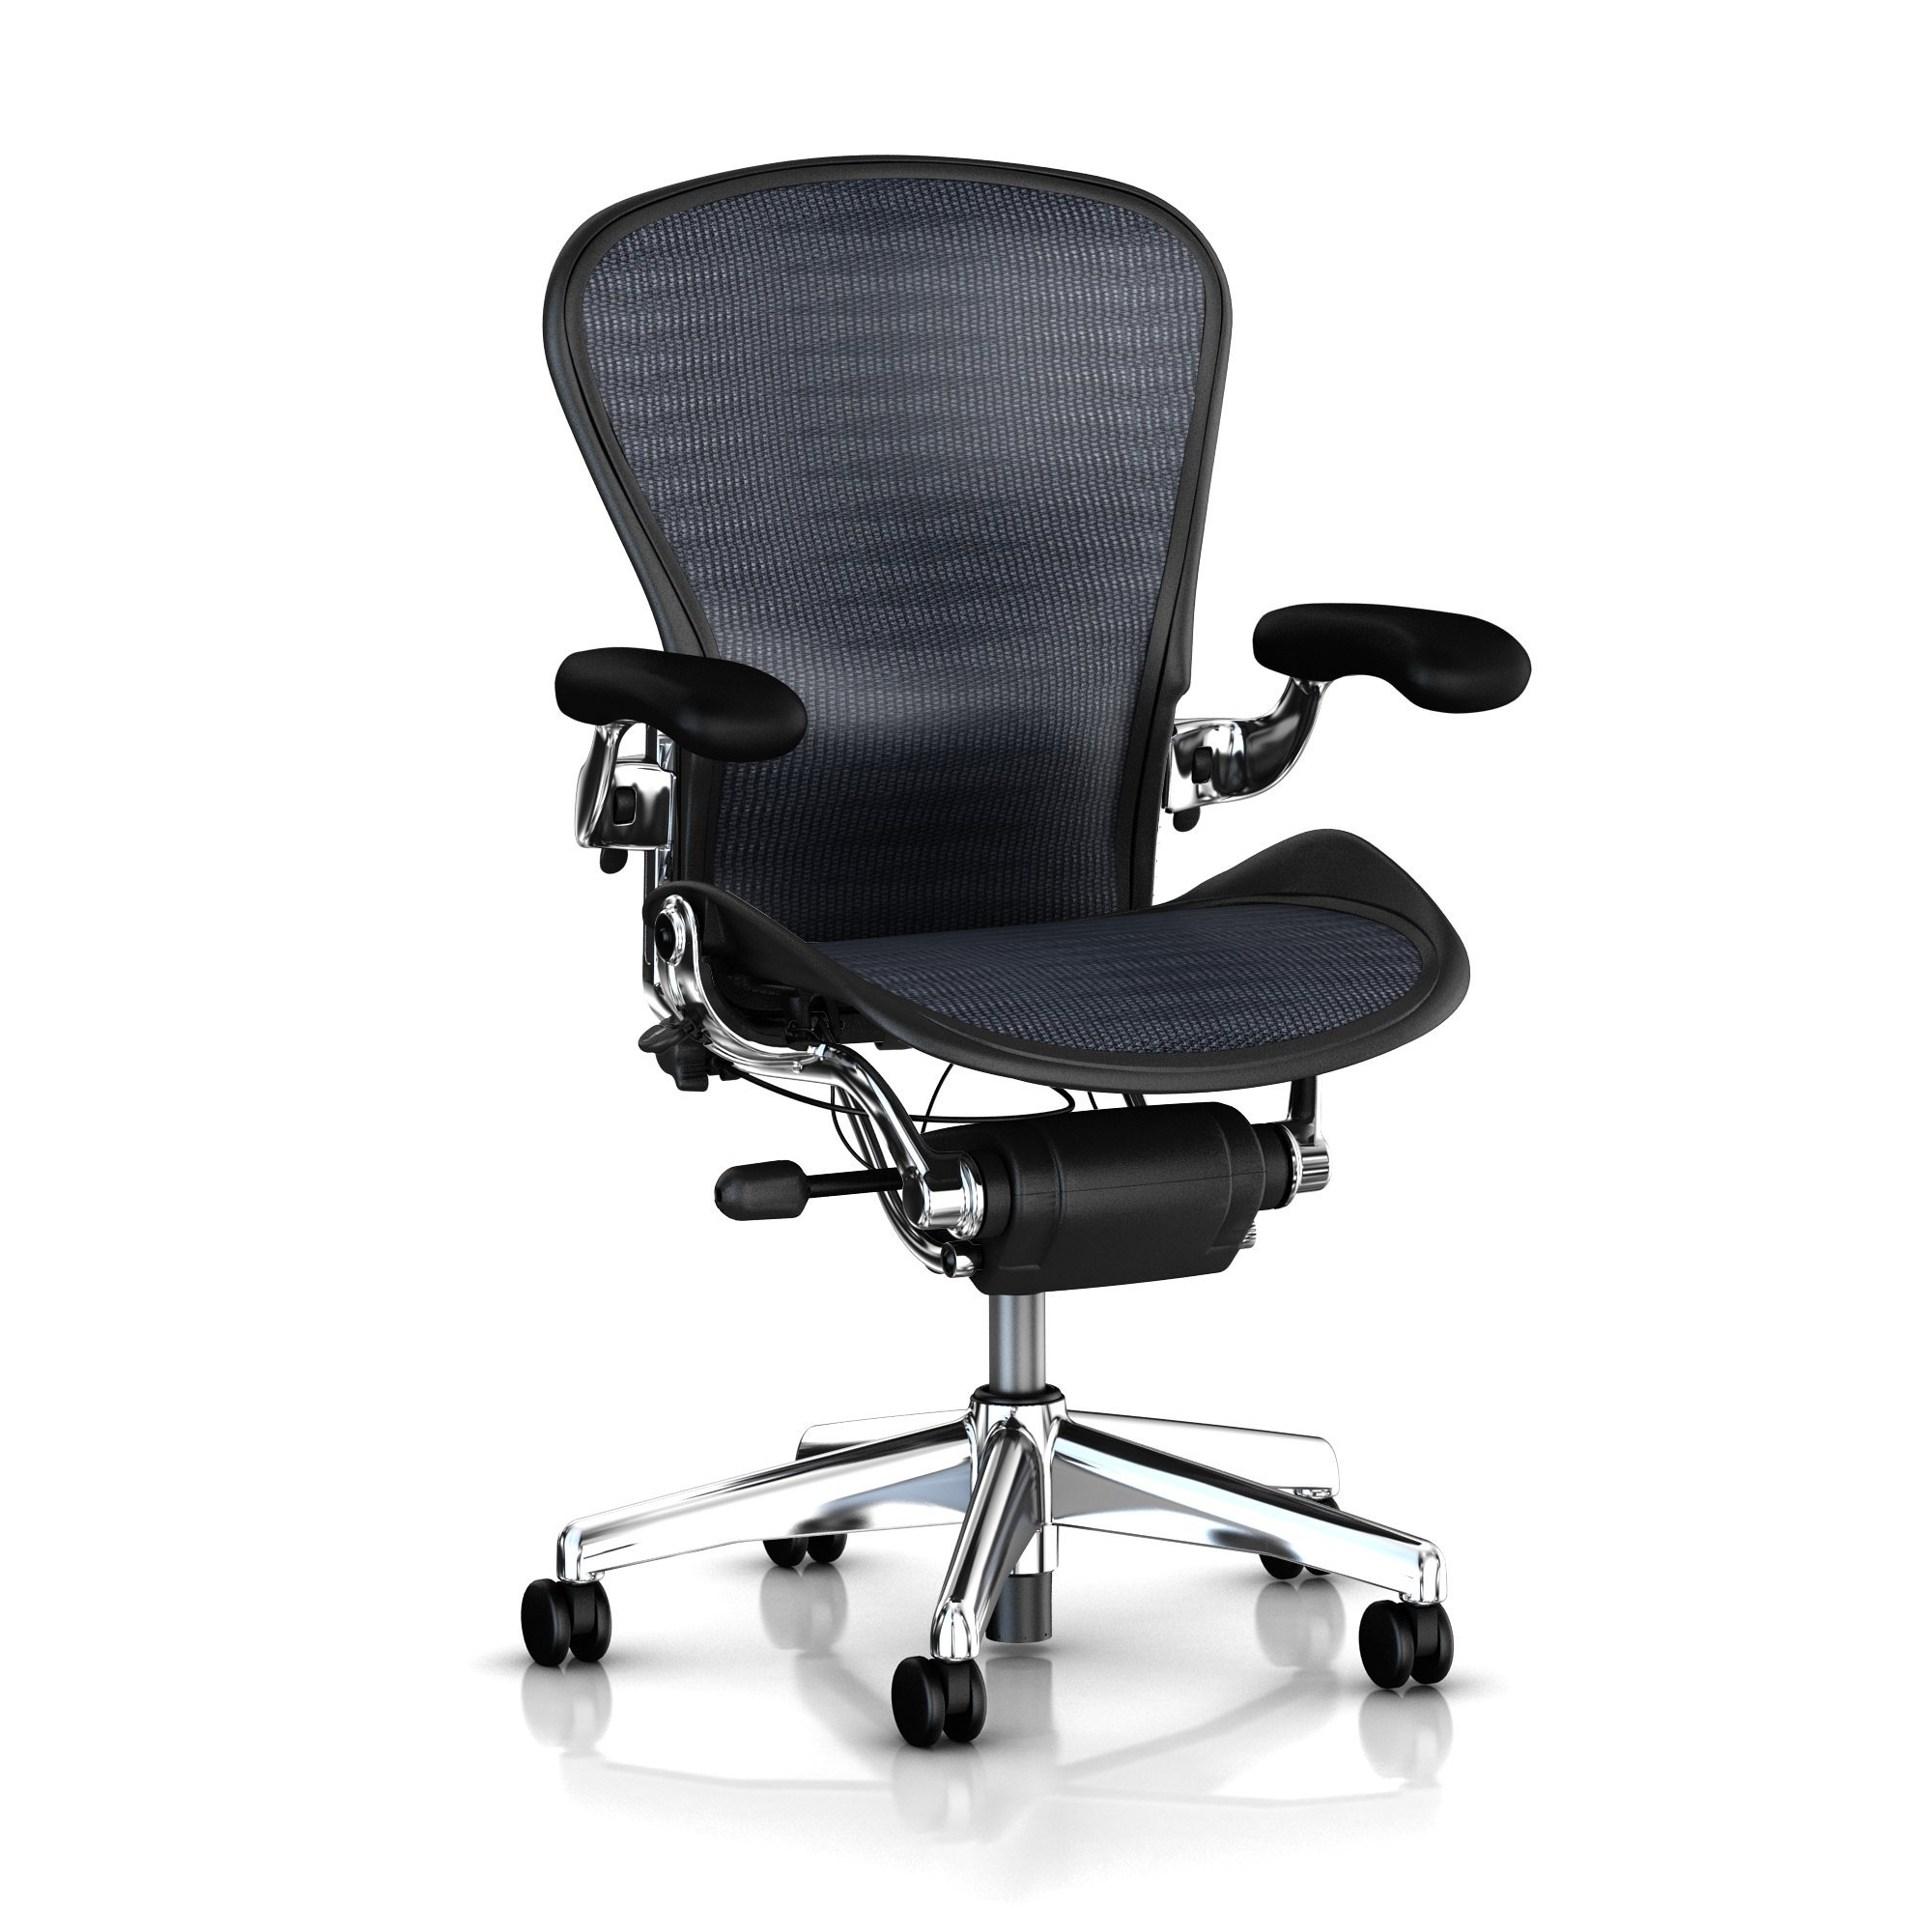 posturefit chair panda bean bag executive aeron by herman miller polished aluminum frame leather arms lumbar blue black